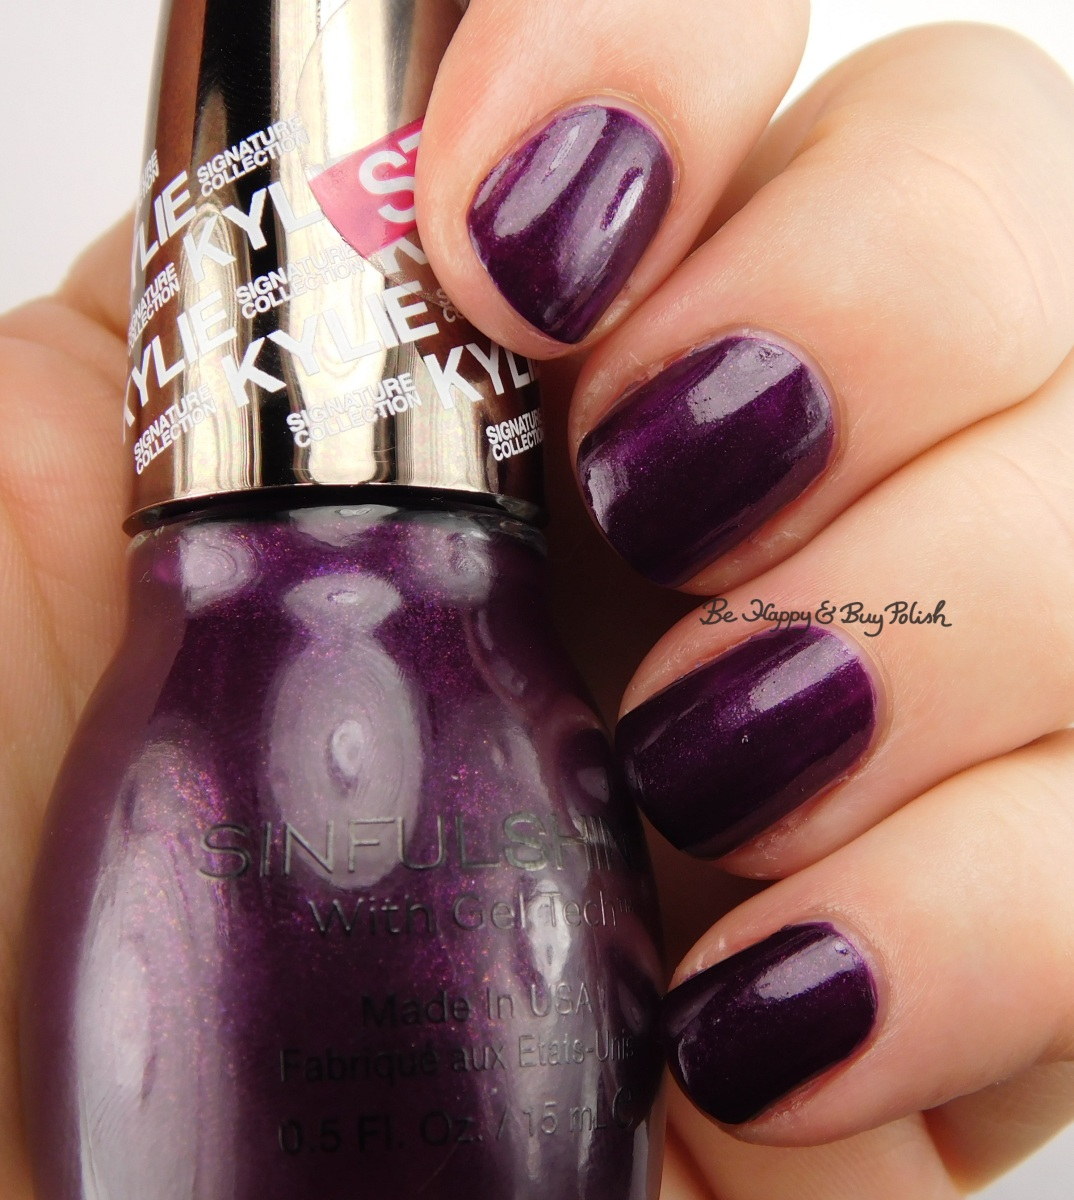 Sinful Colors Sinful Shine Karnival nail polish swatch + review [Kylie Signature Collection]